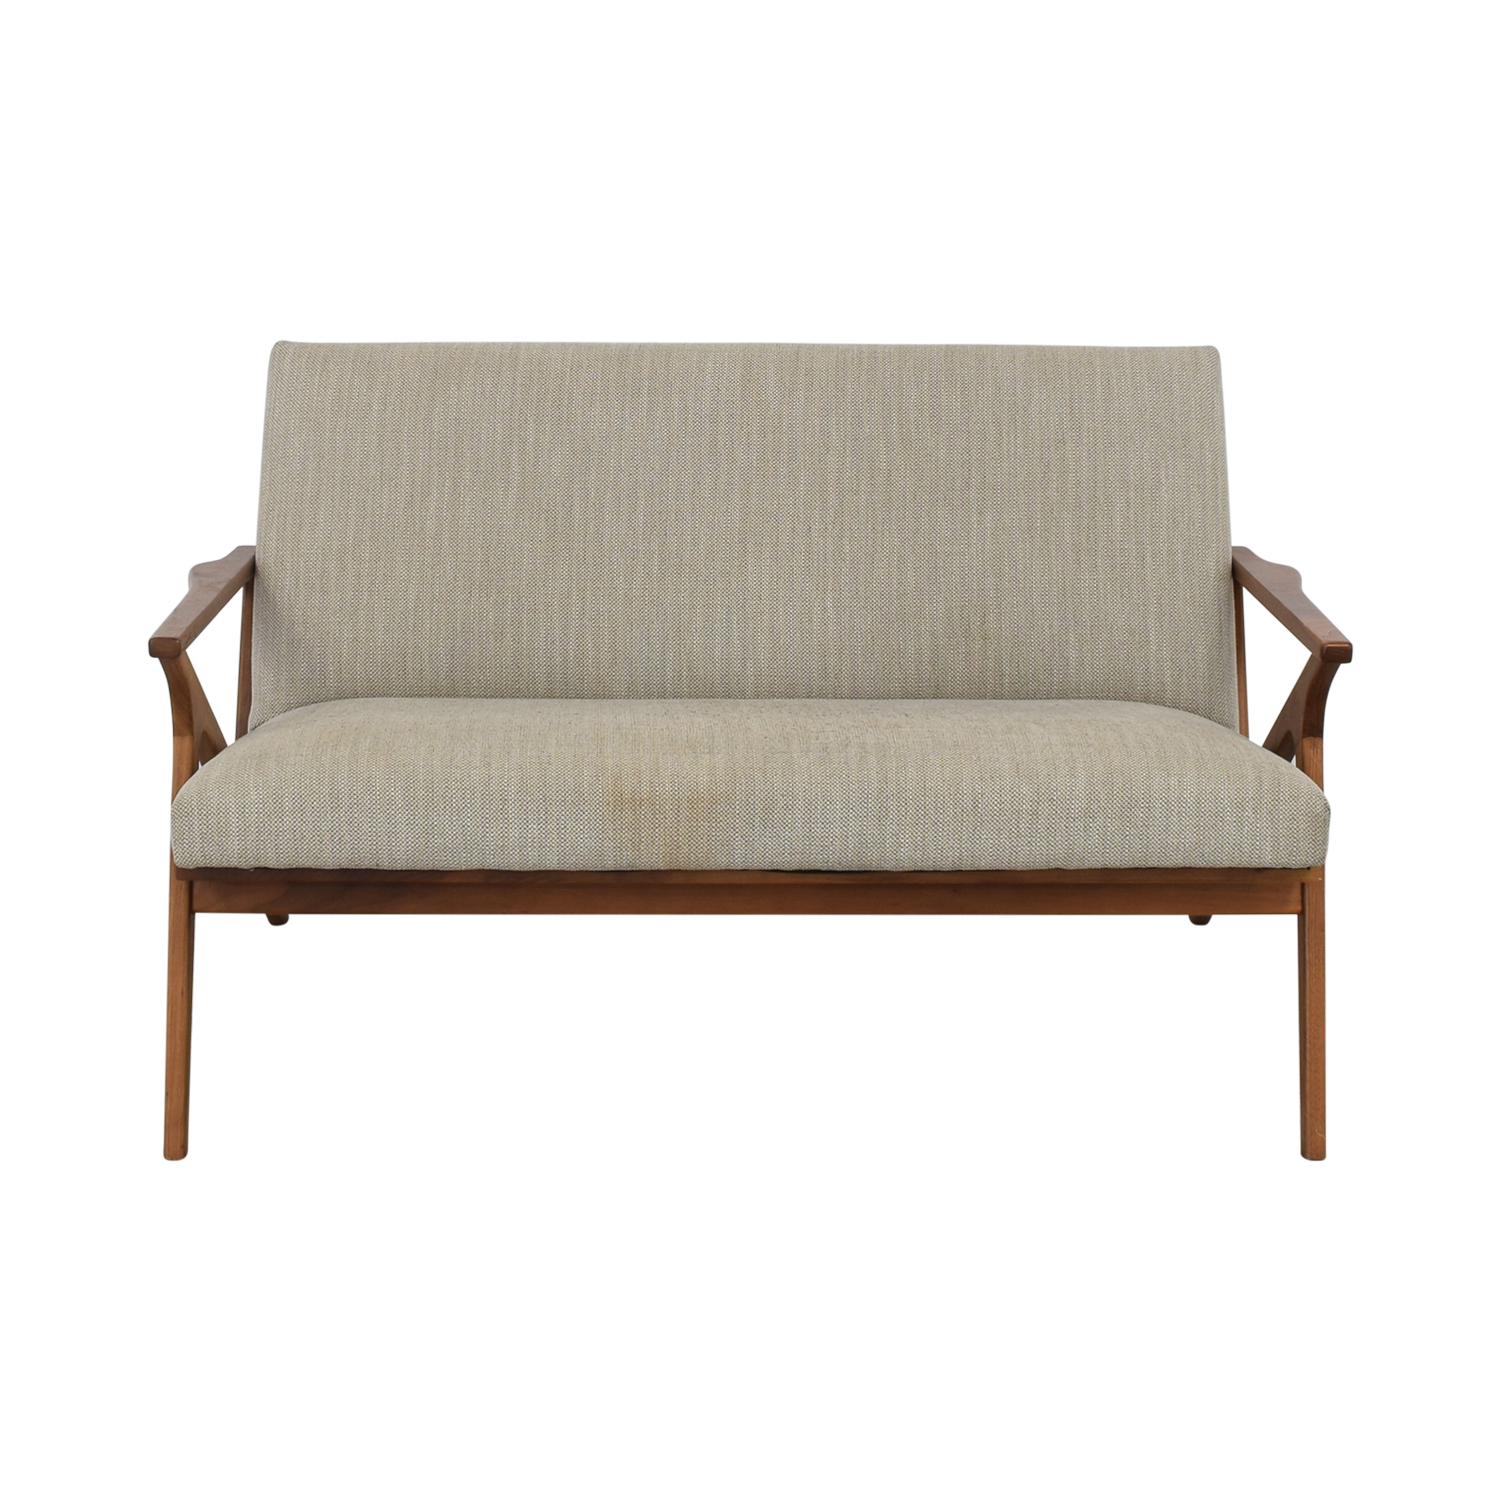 Crate & Barrel Crate & Barrel Cavett Frame Wood Love Seat nj